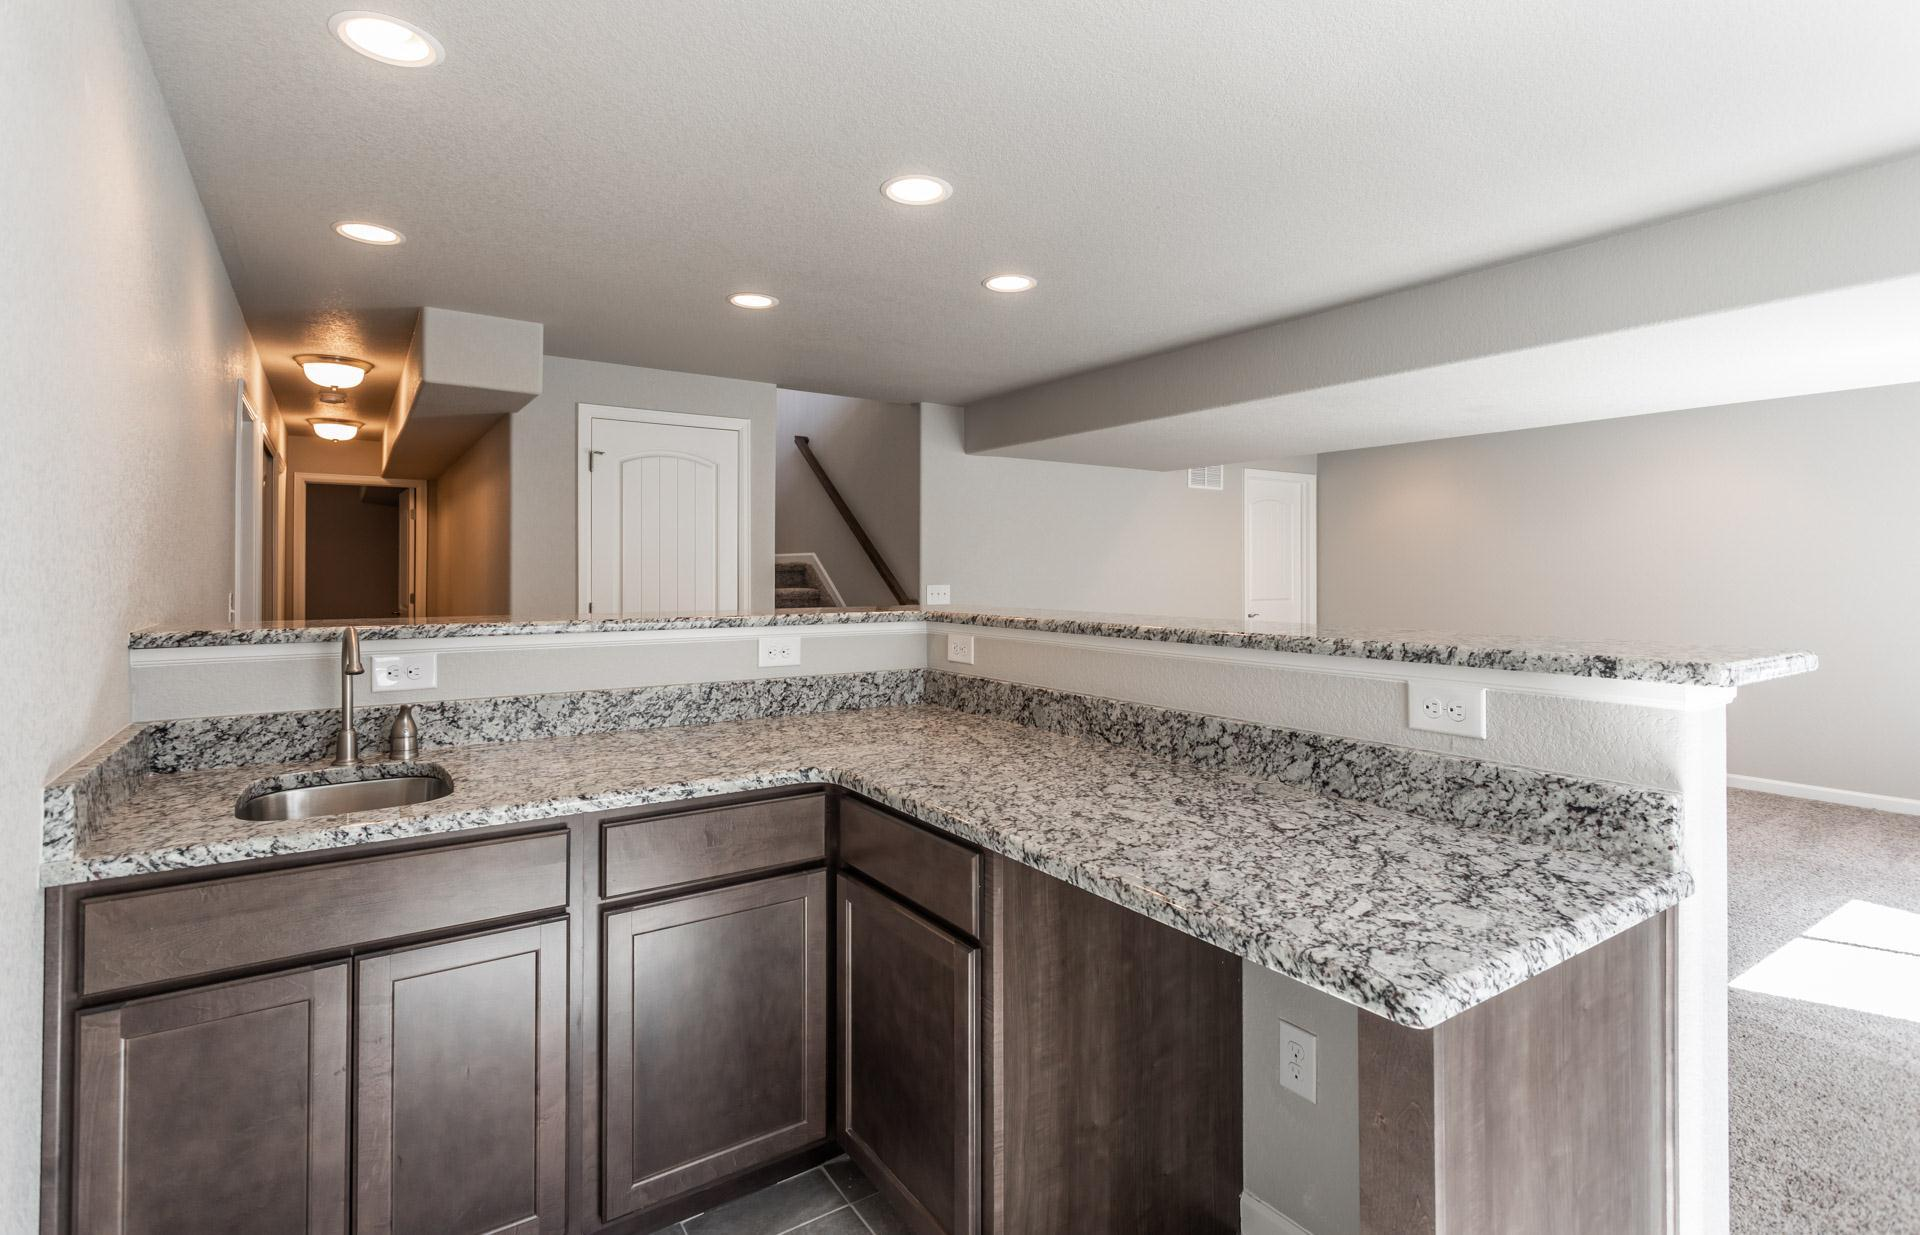 Kitchen featured in the Ponderosa By Challenger Homes in Colorado Springs, CO